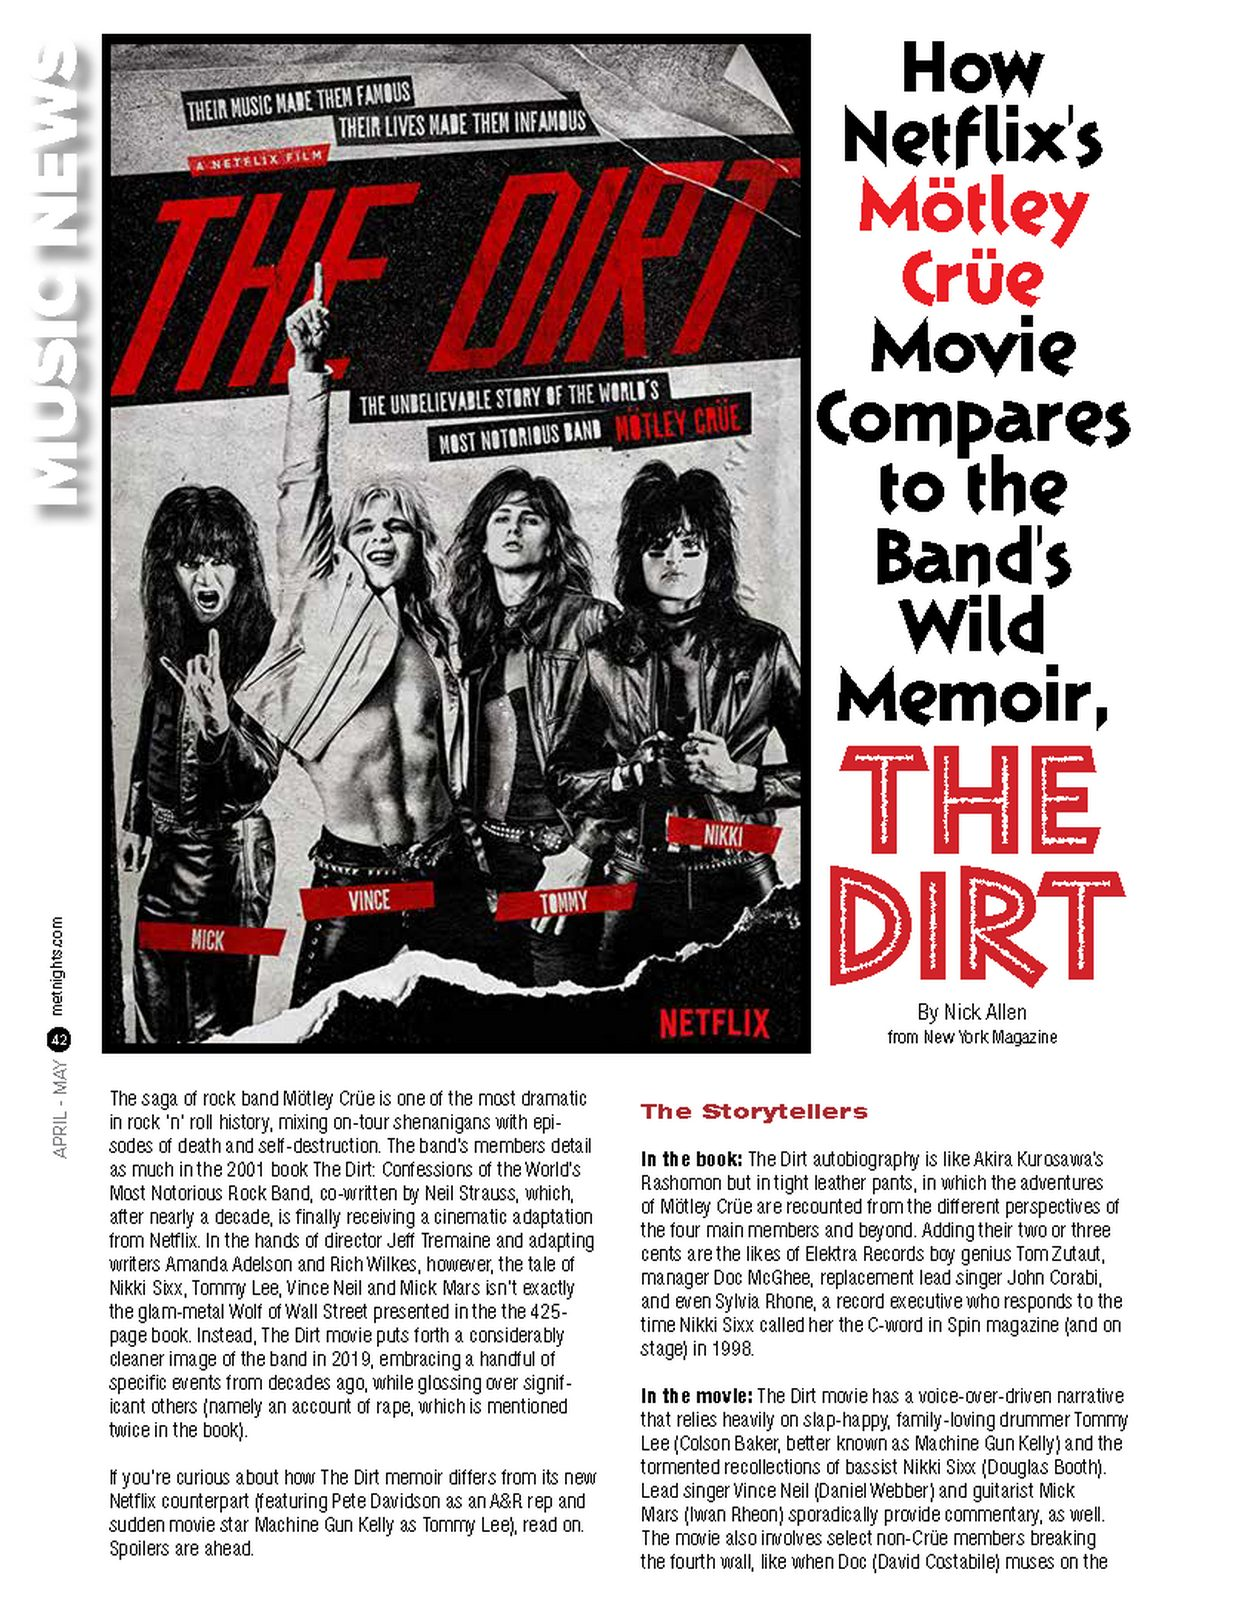 HOW NETFLIX'S MOTLEY CRUE MOVIE COMPARES TO THE BAND'S WILD MEMOIR, THE DIRT